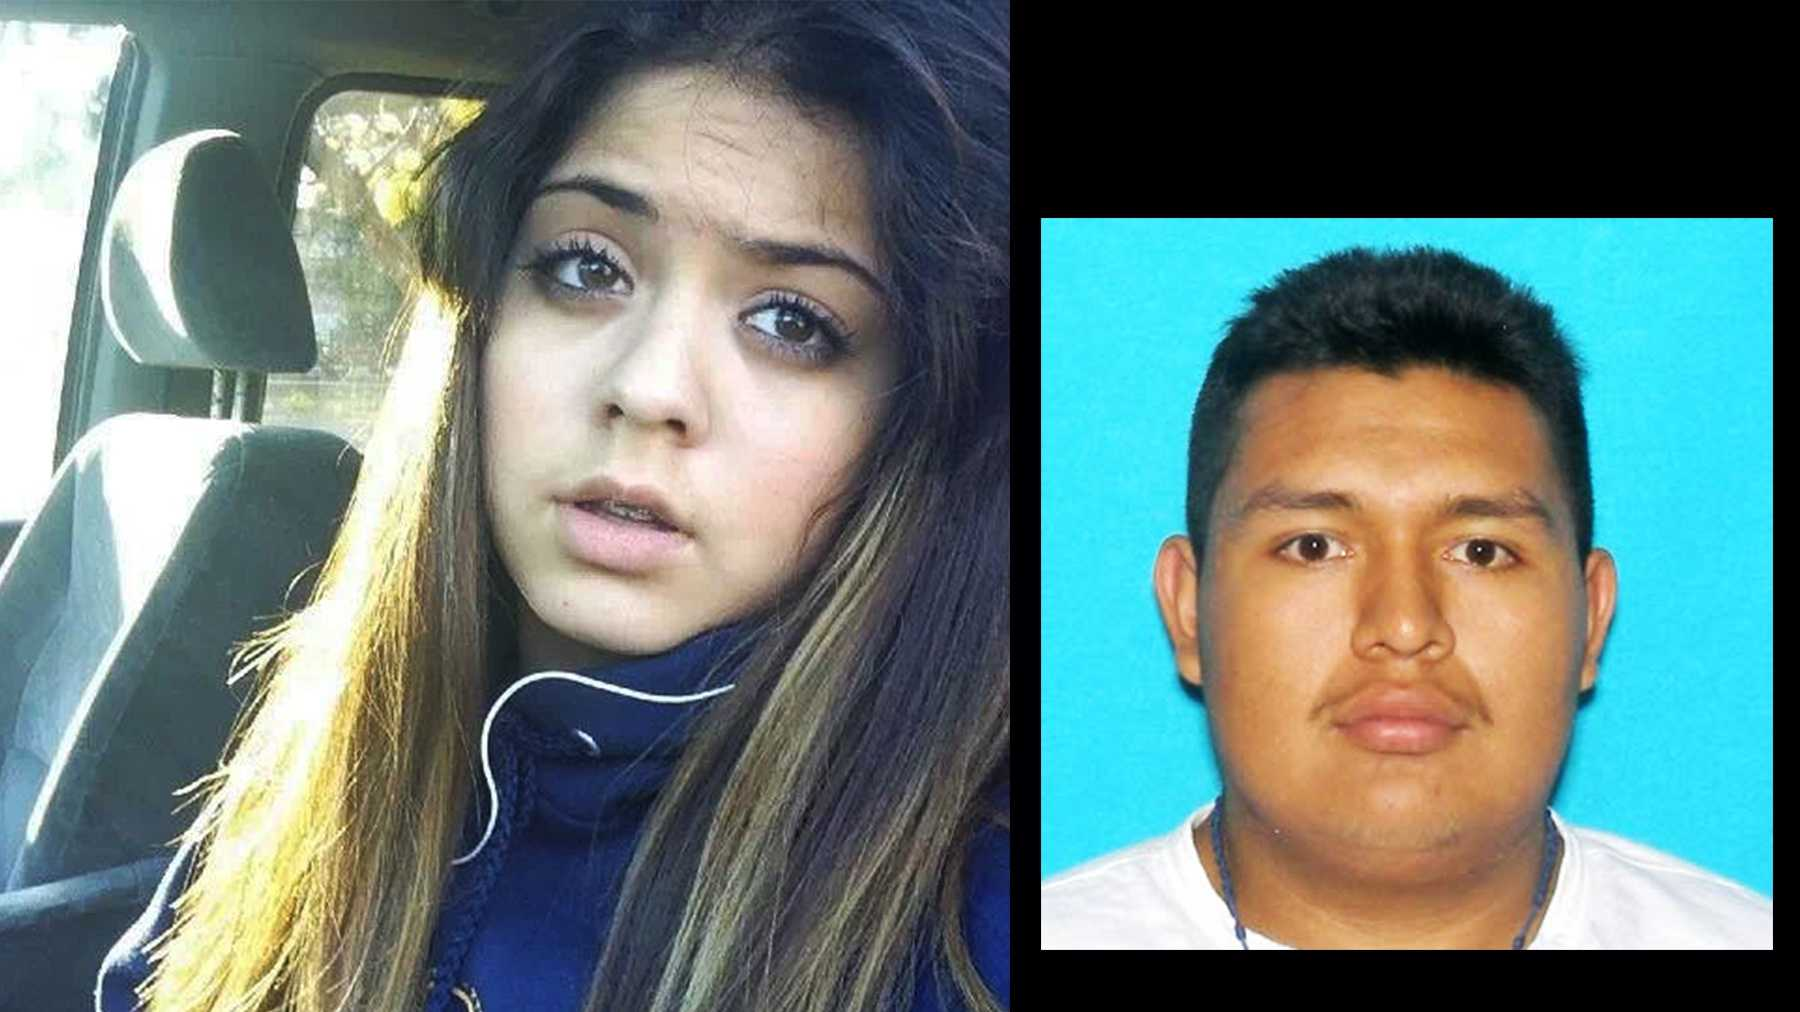 Elizabeth Romero was abducted by Edwardo Fabian Flores Rosalesaccording to the CHP.